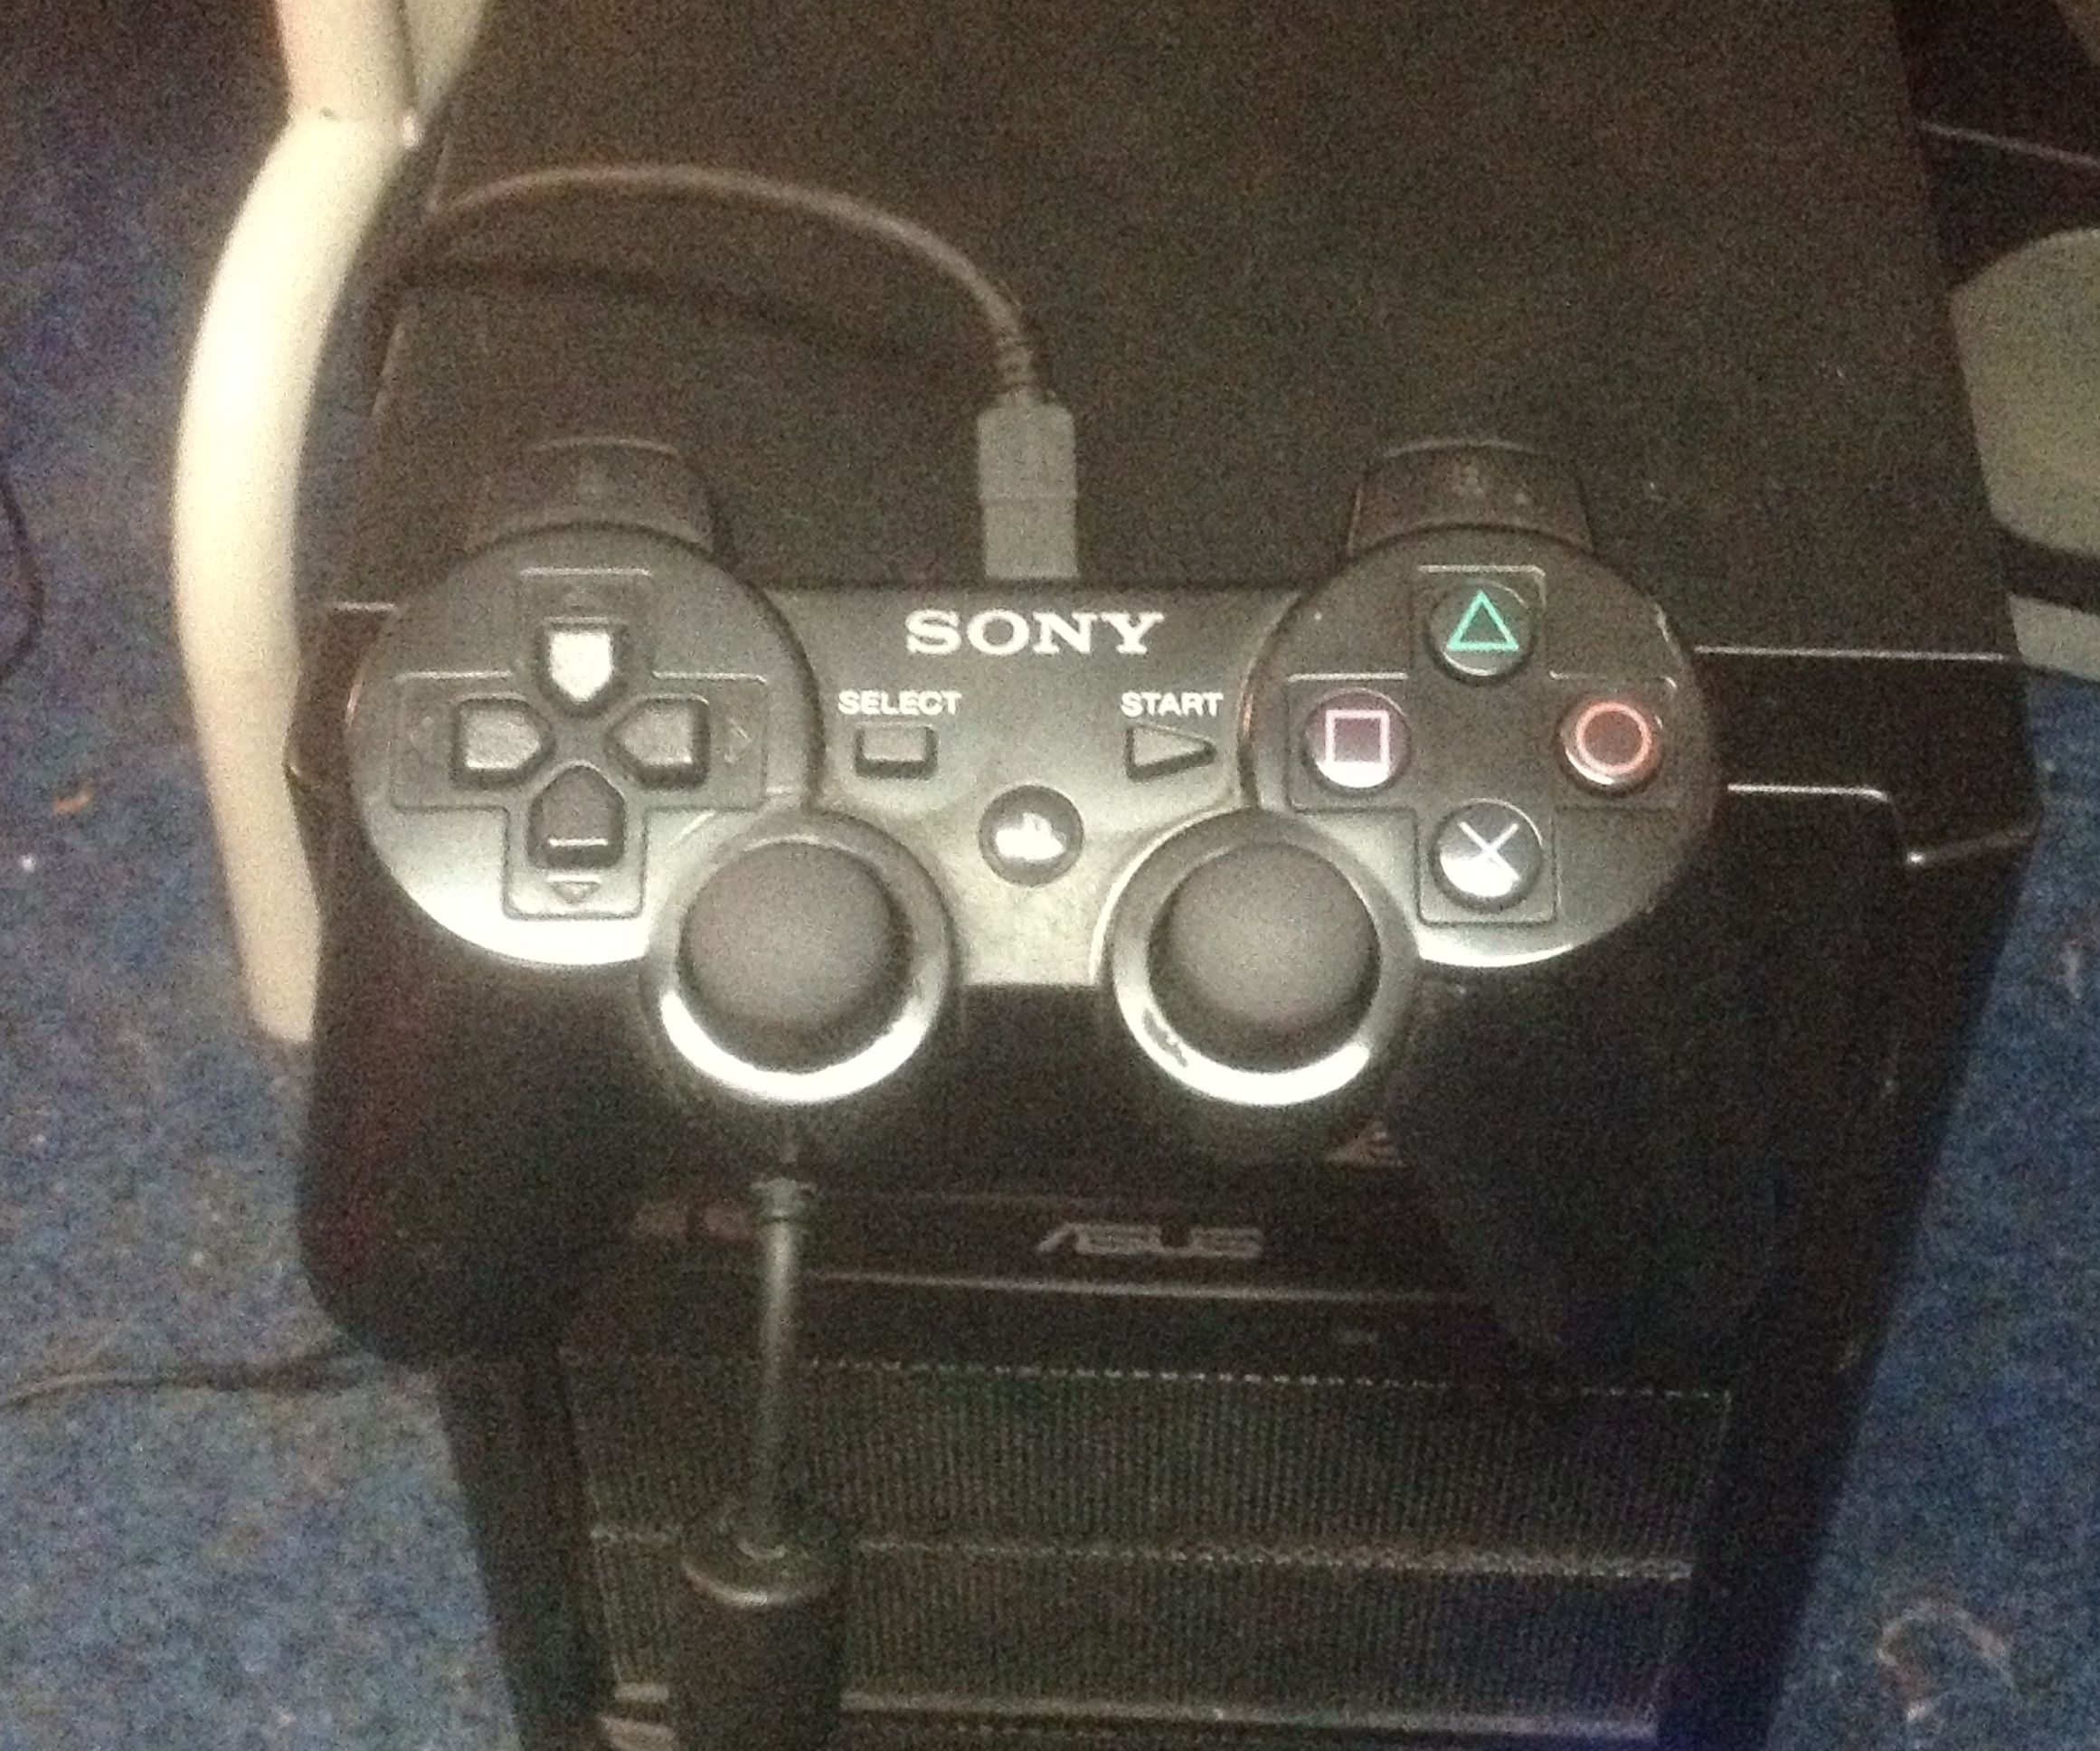 Using a Playstation controller with Windows